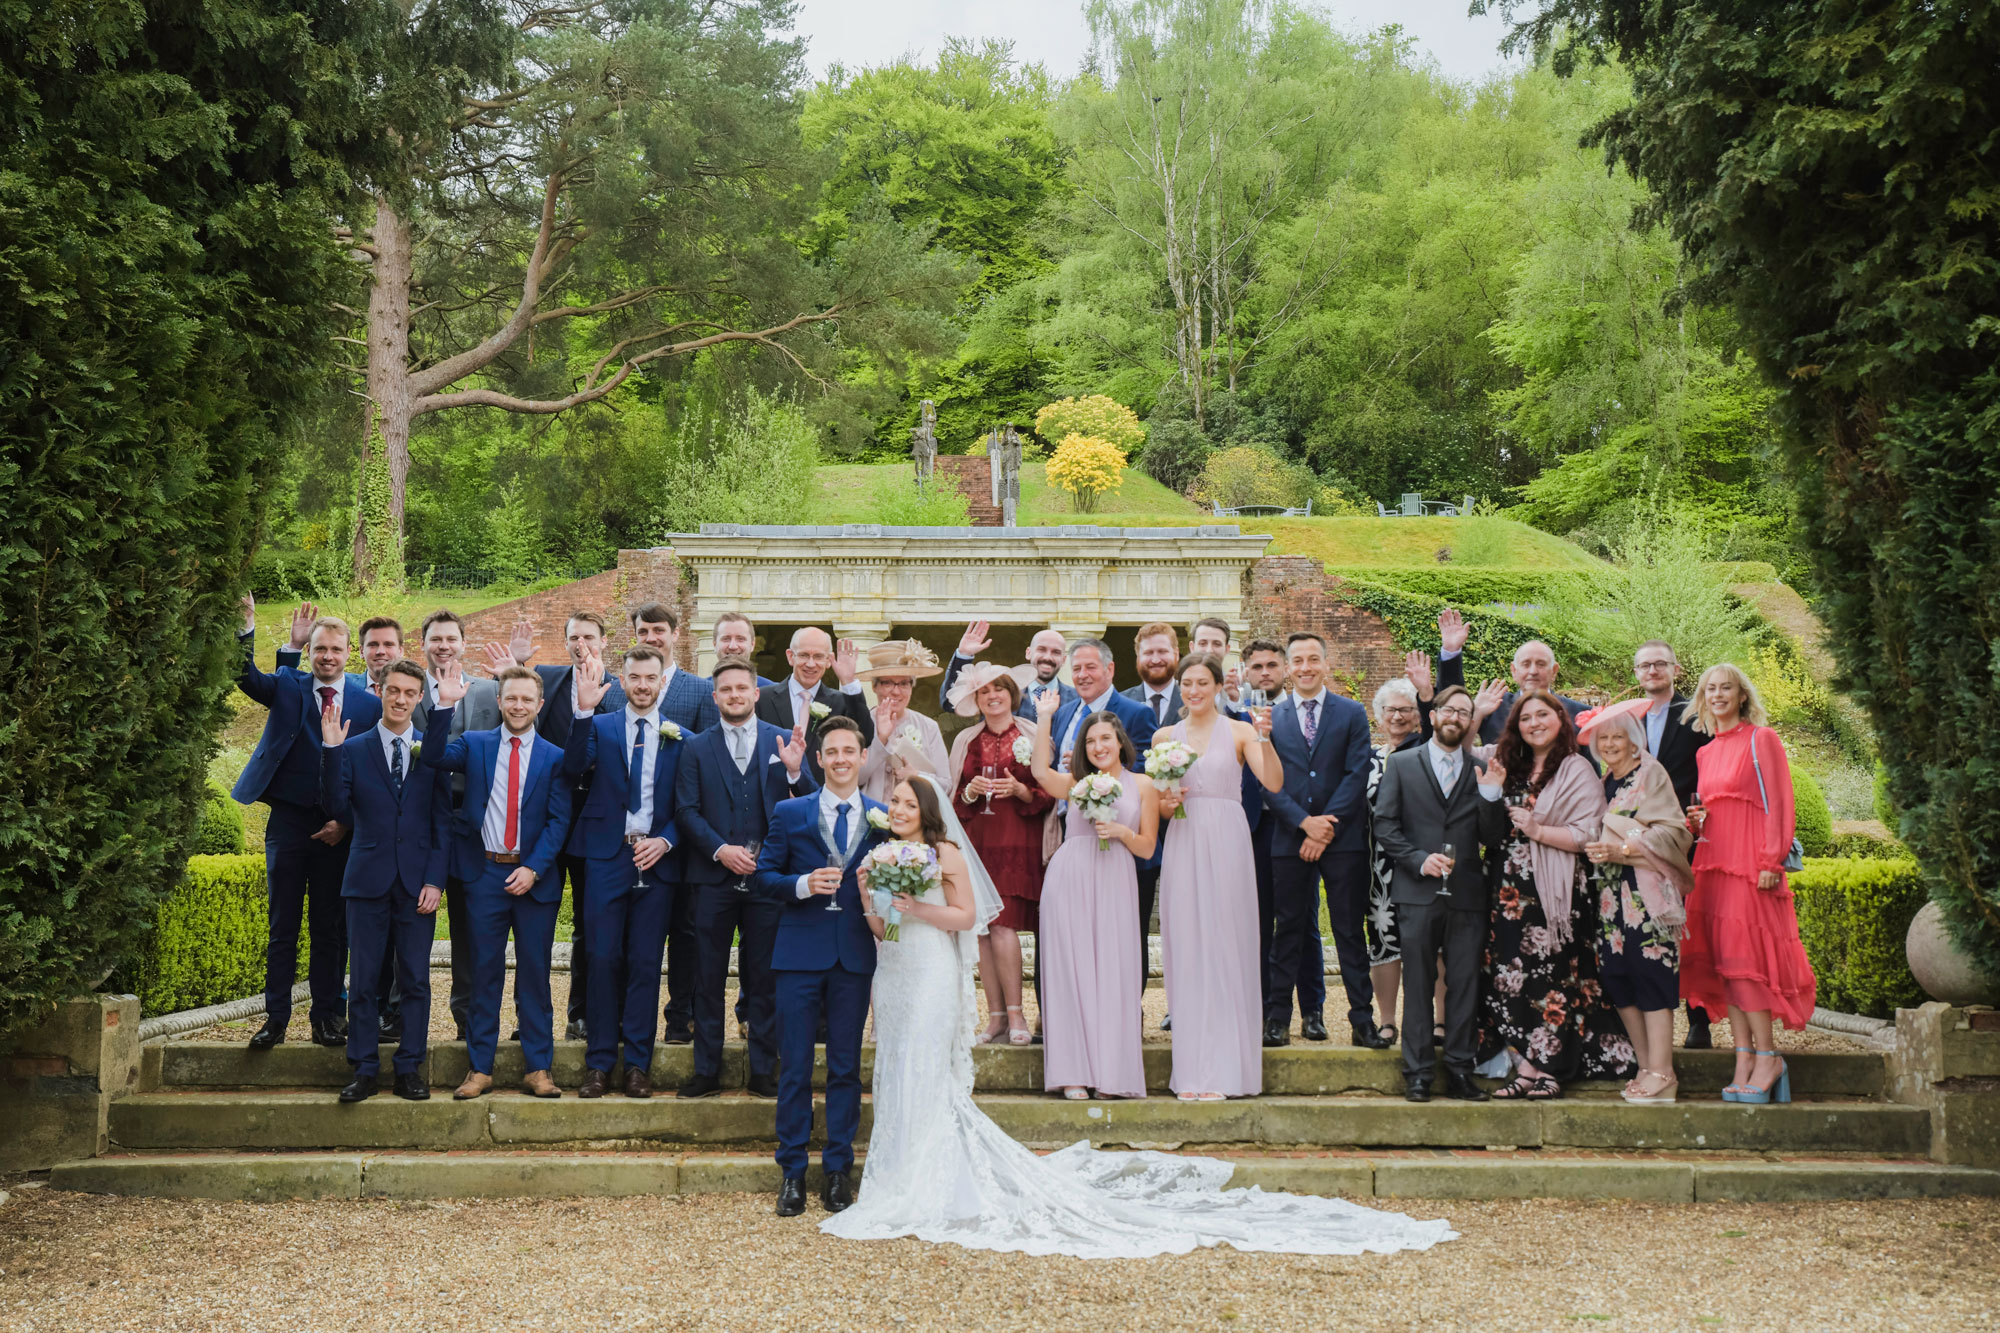 Group Wedding Photography in the Gardens at Wotton House